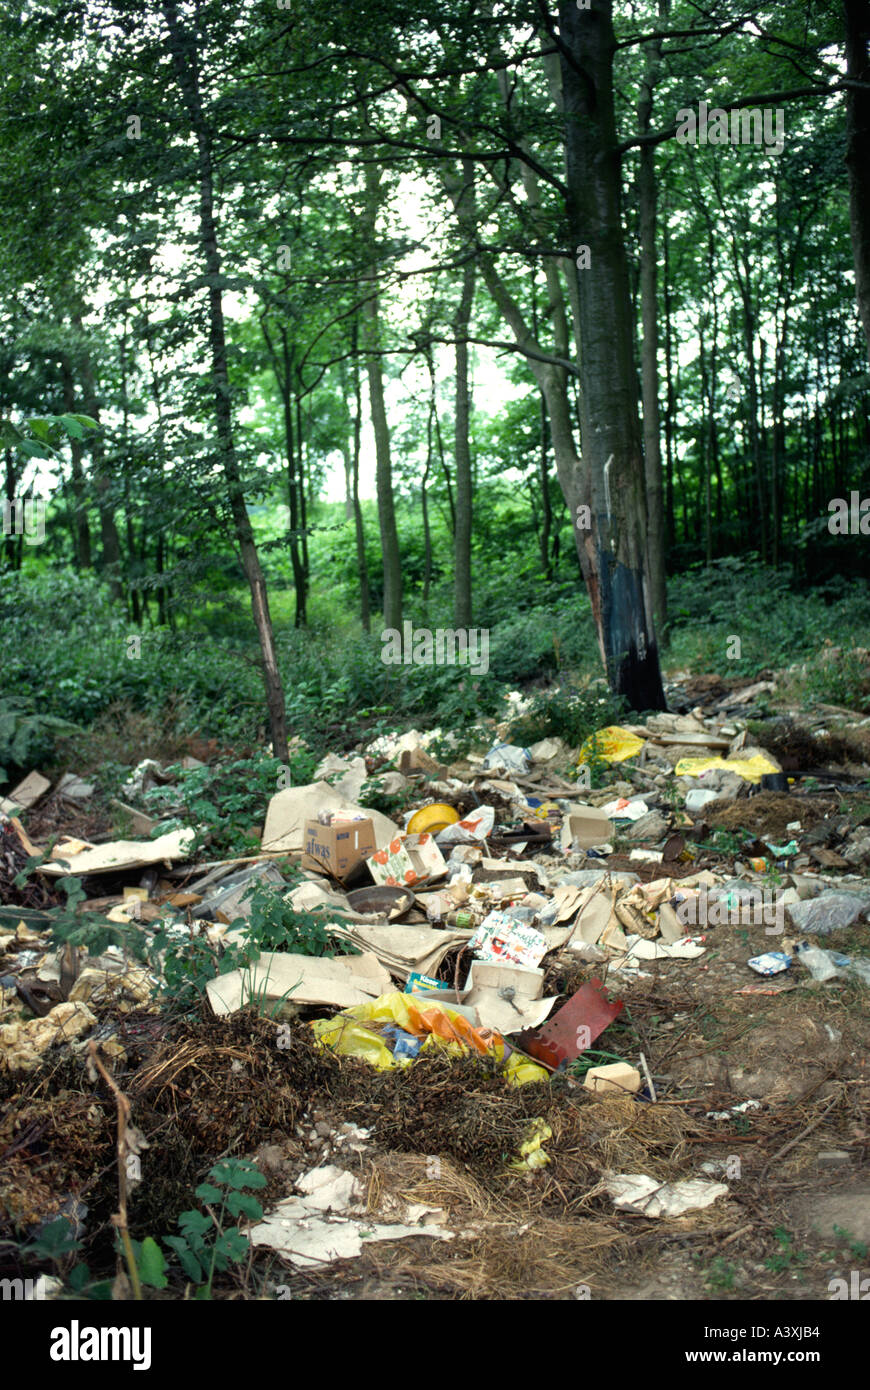 Litter thrown in a danish forrest, - Stock Image